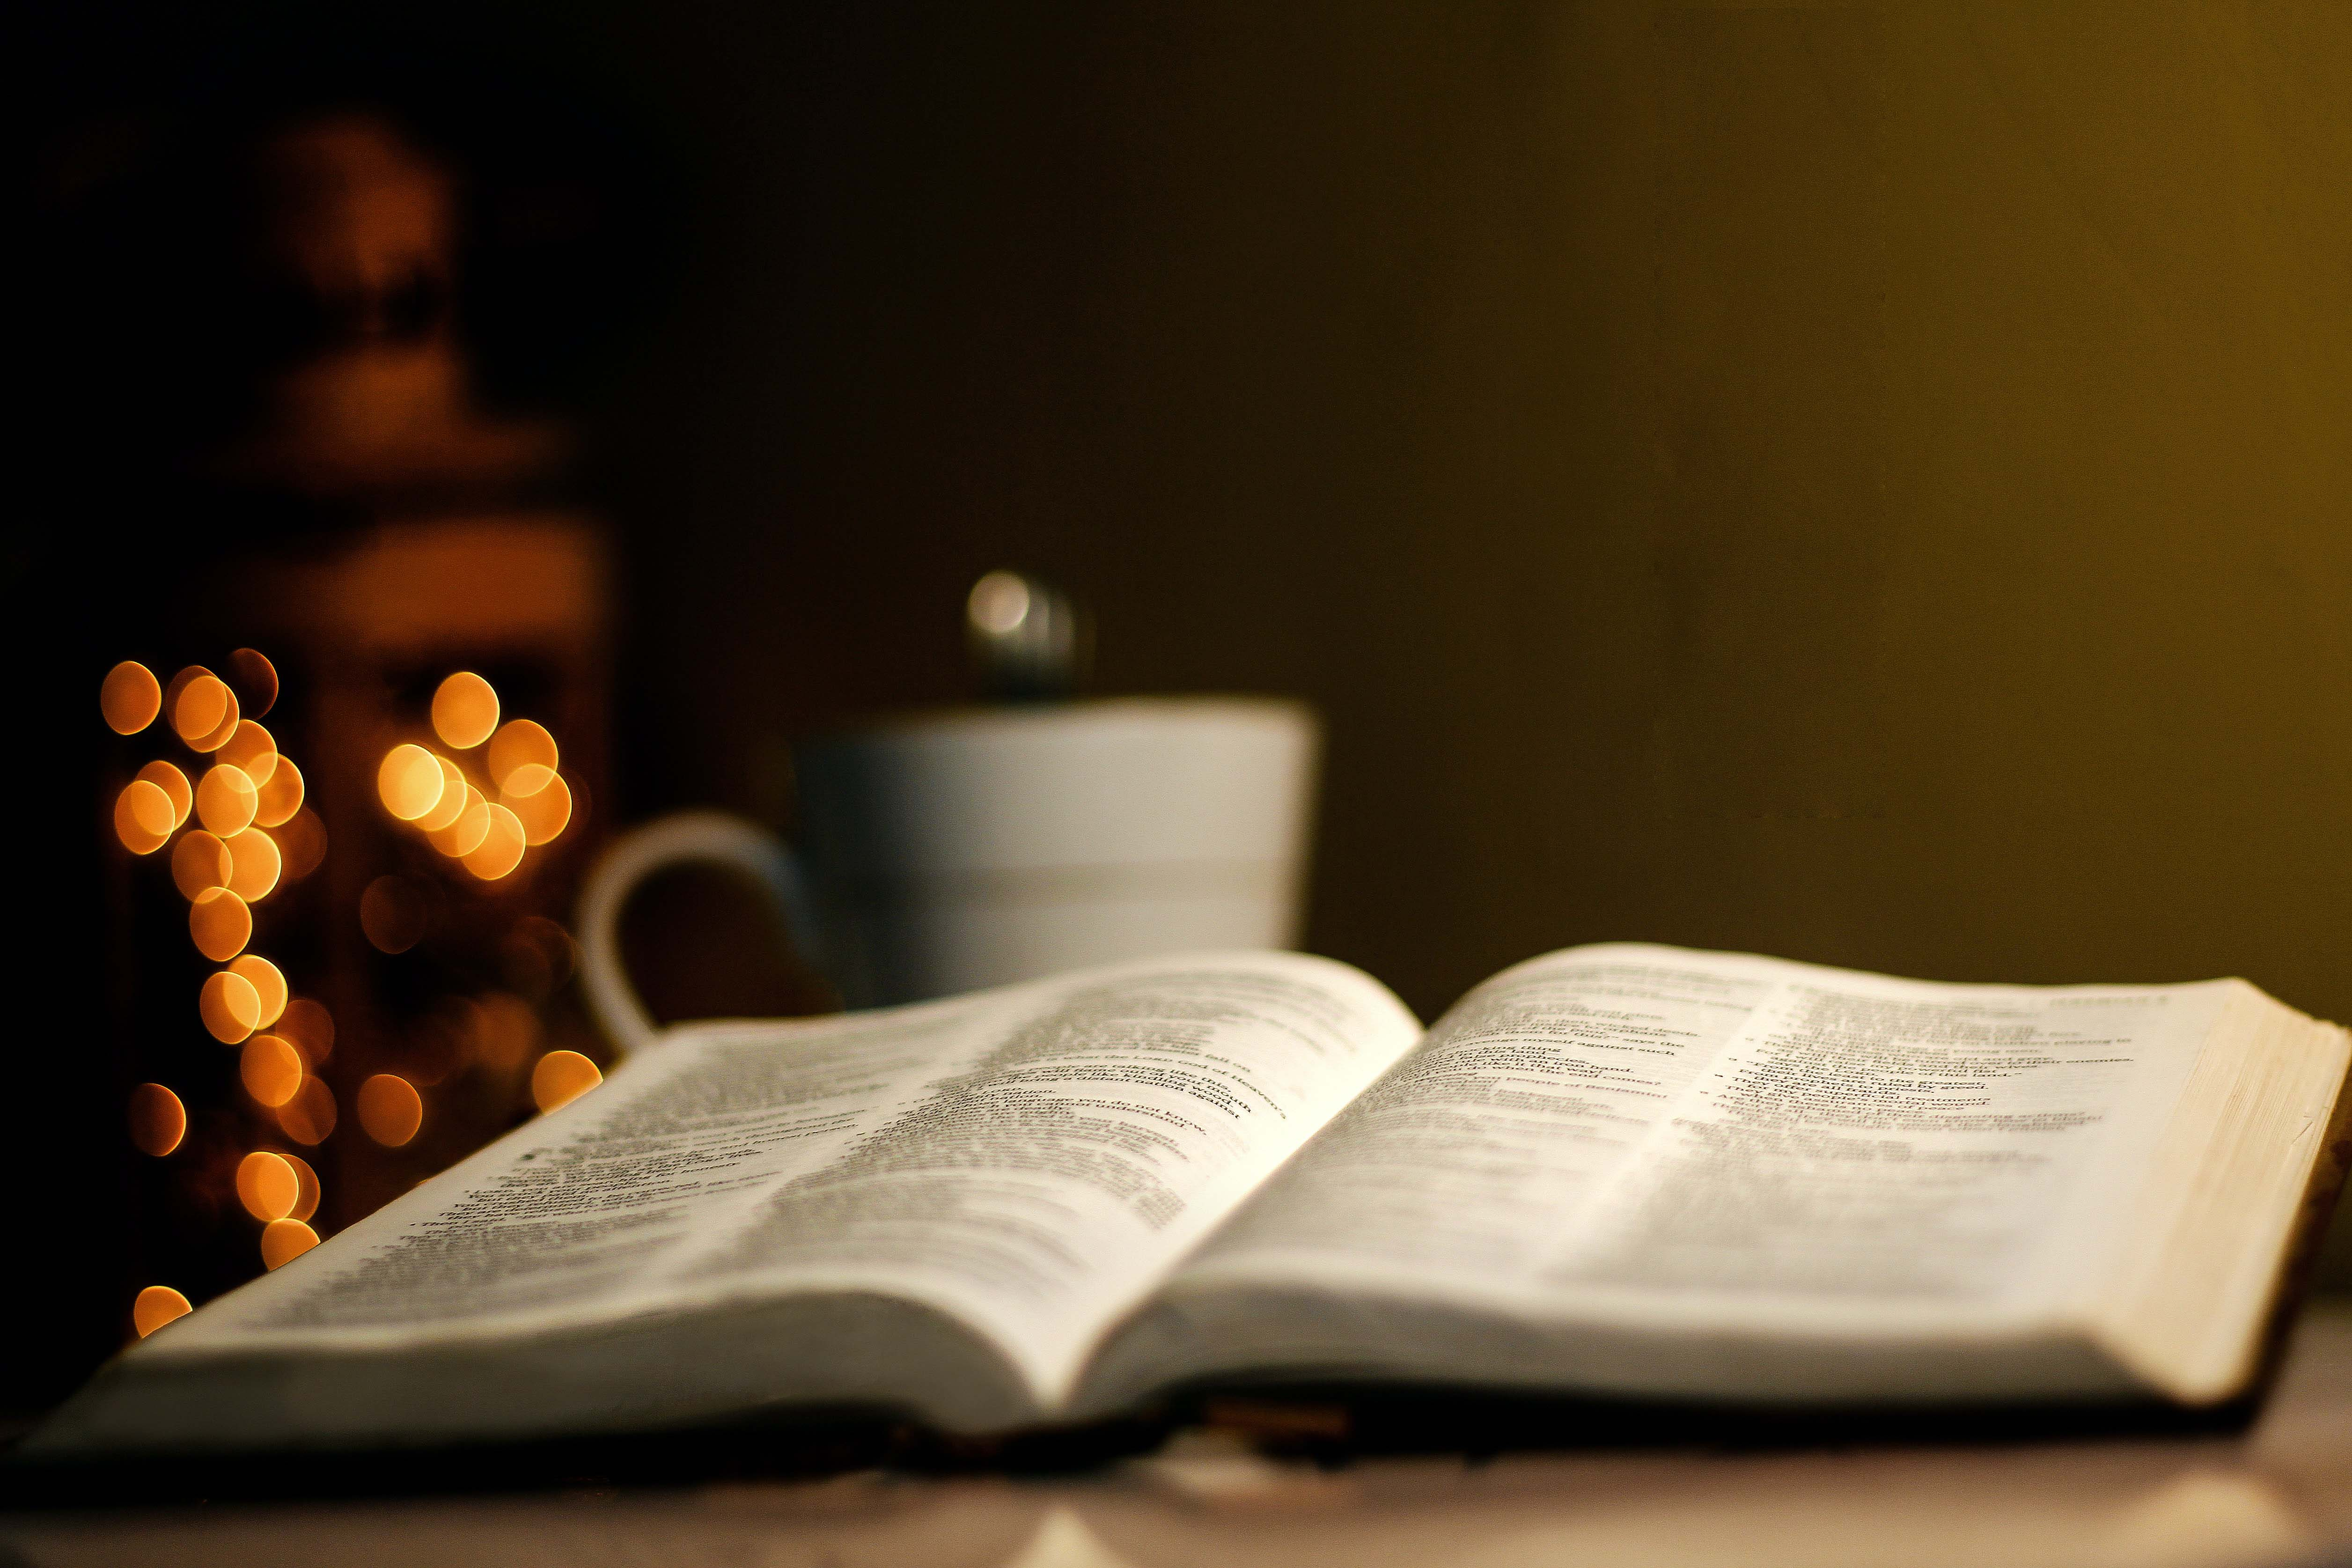 The image shows a book laying open on a table and the view is as if you're looking at it from table level. Behind the book is a coffee mug and holiday lights, both out of focus, giving the photo a soft glow.